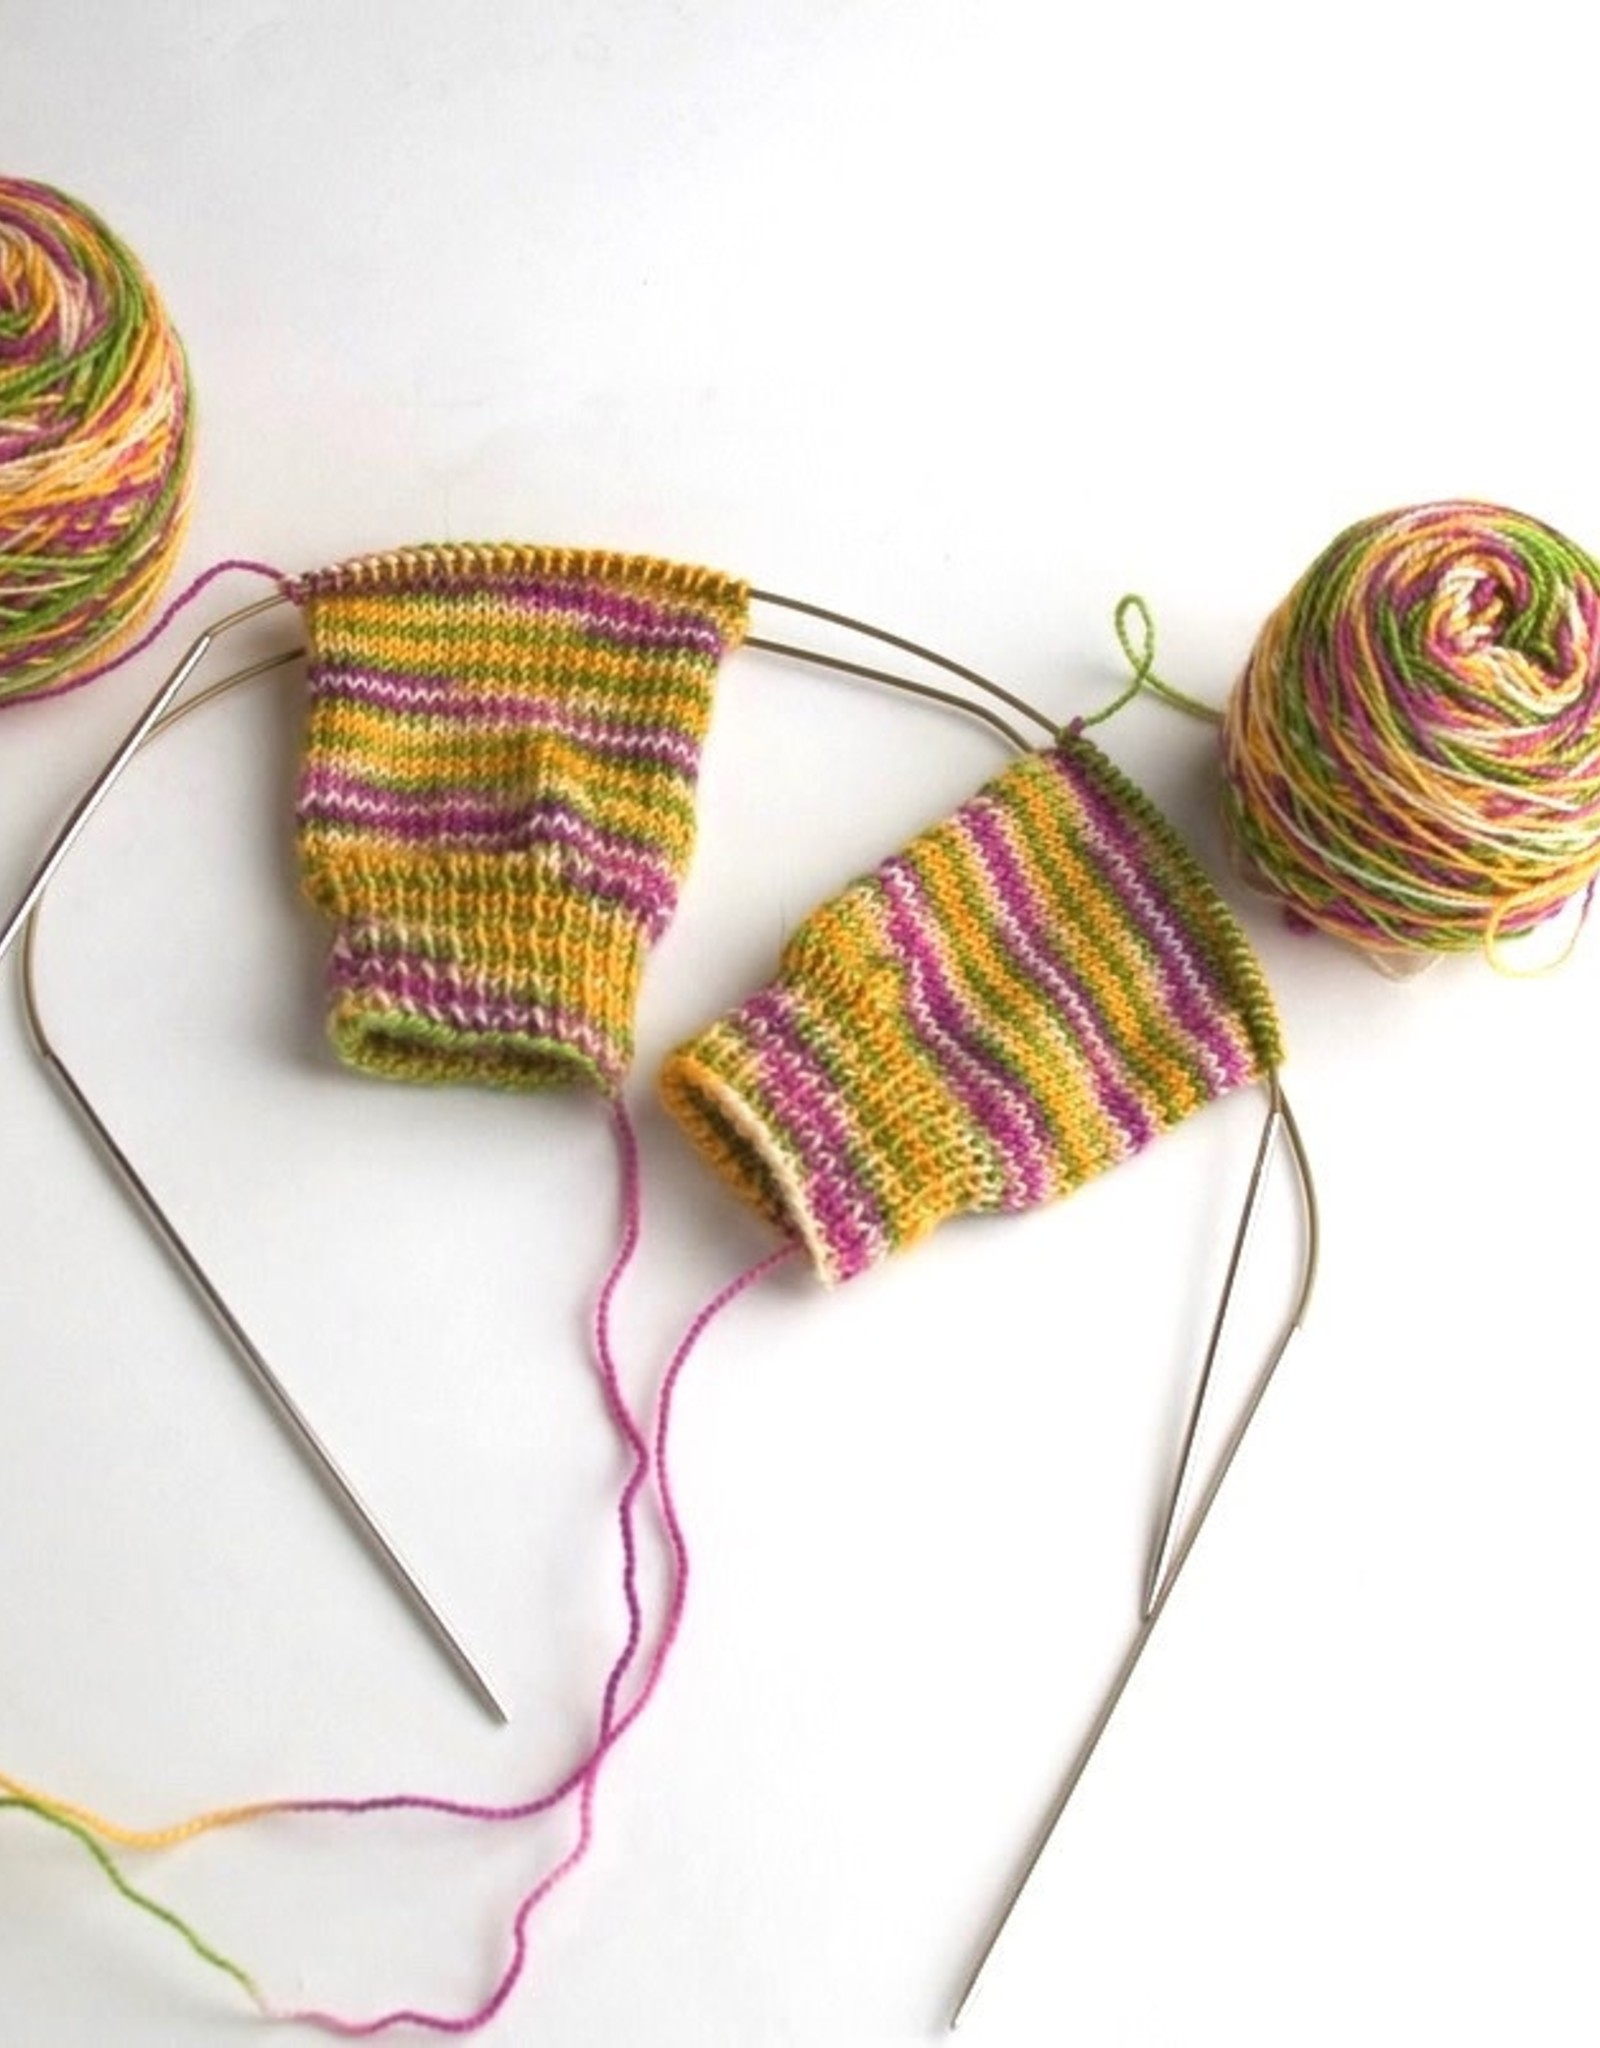 Esther Hall Socks Two-at-a-Time, June 5 & 12th